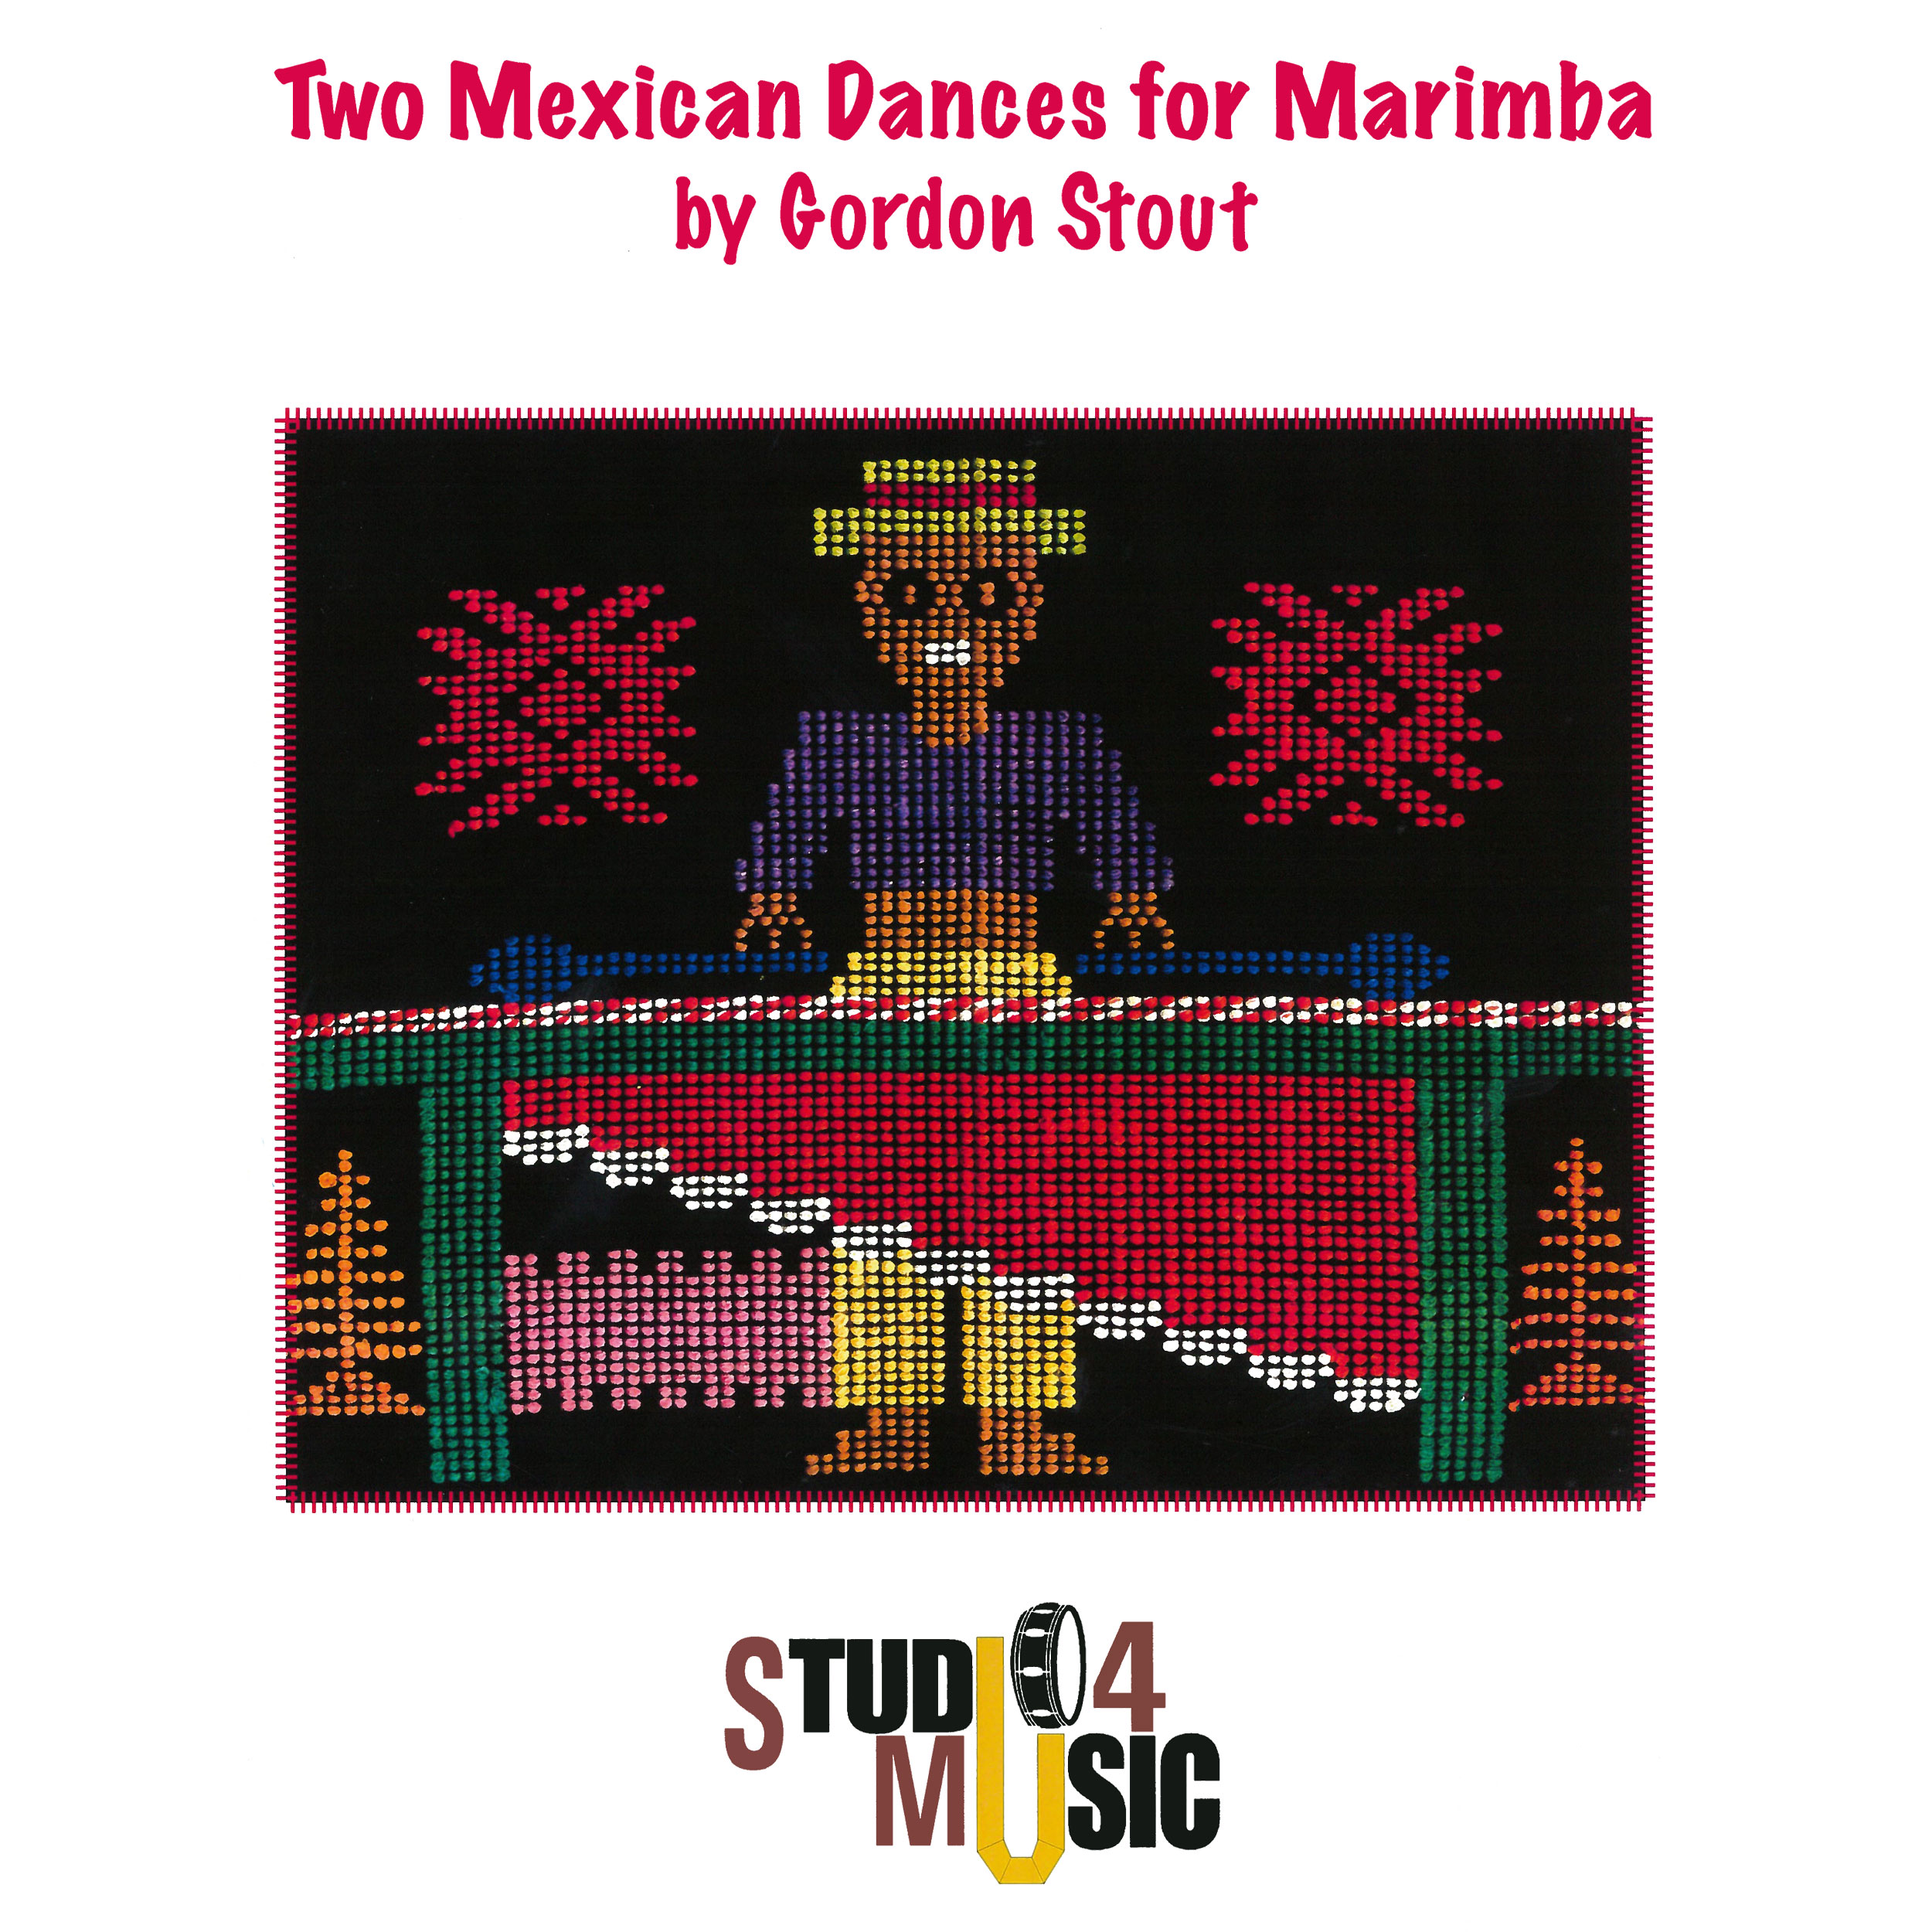 Two Mexican Dances by Gordon Stout